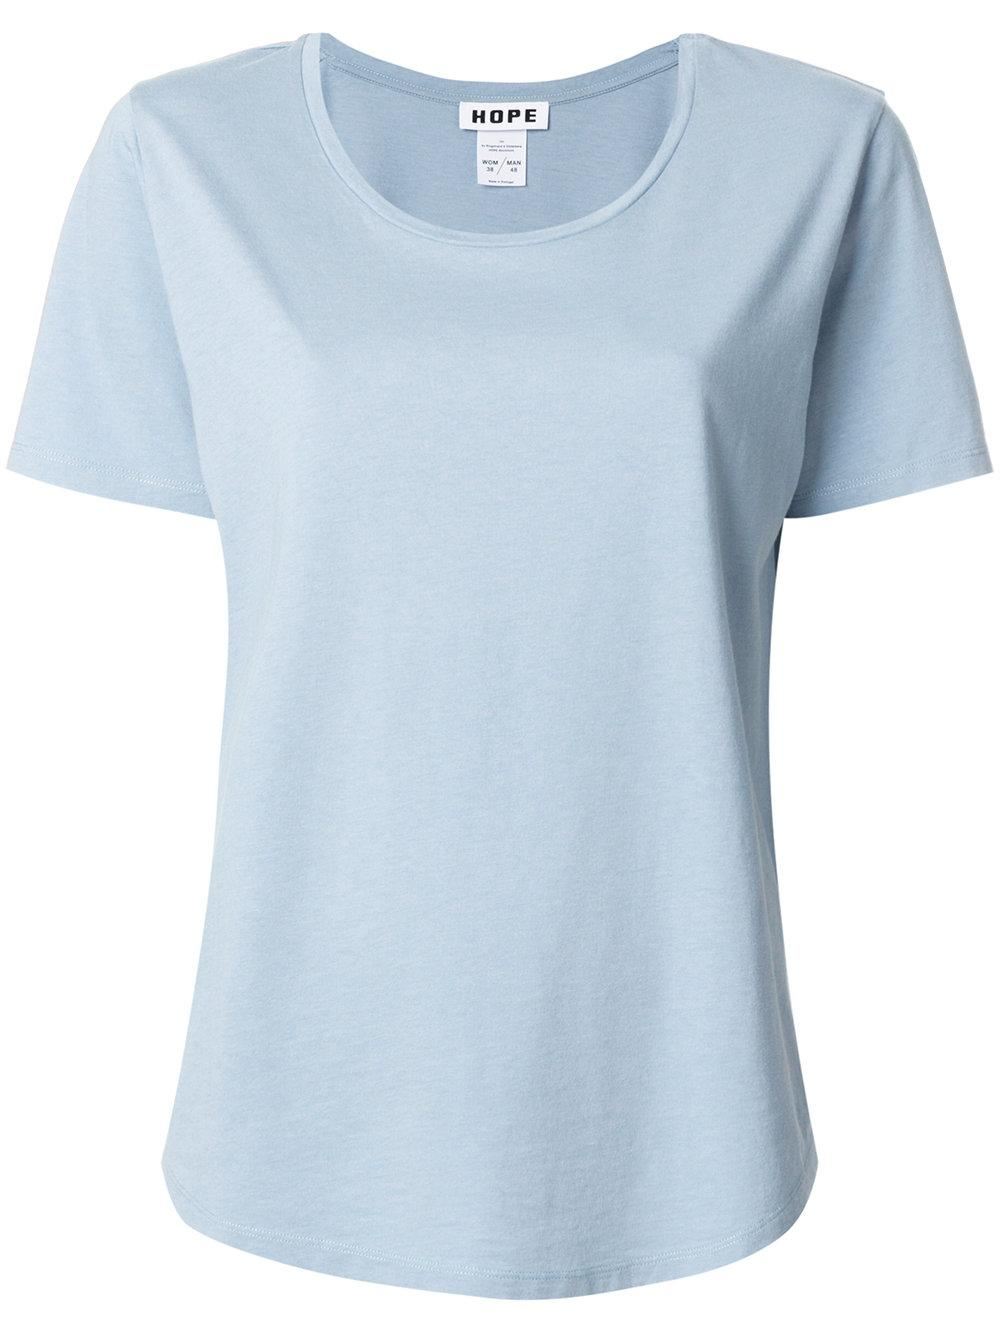 Hope Round Neck T-shirt